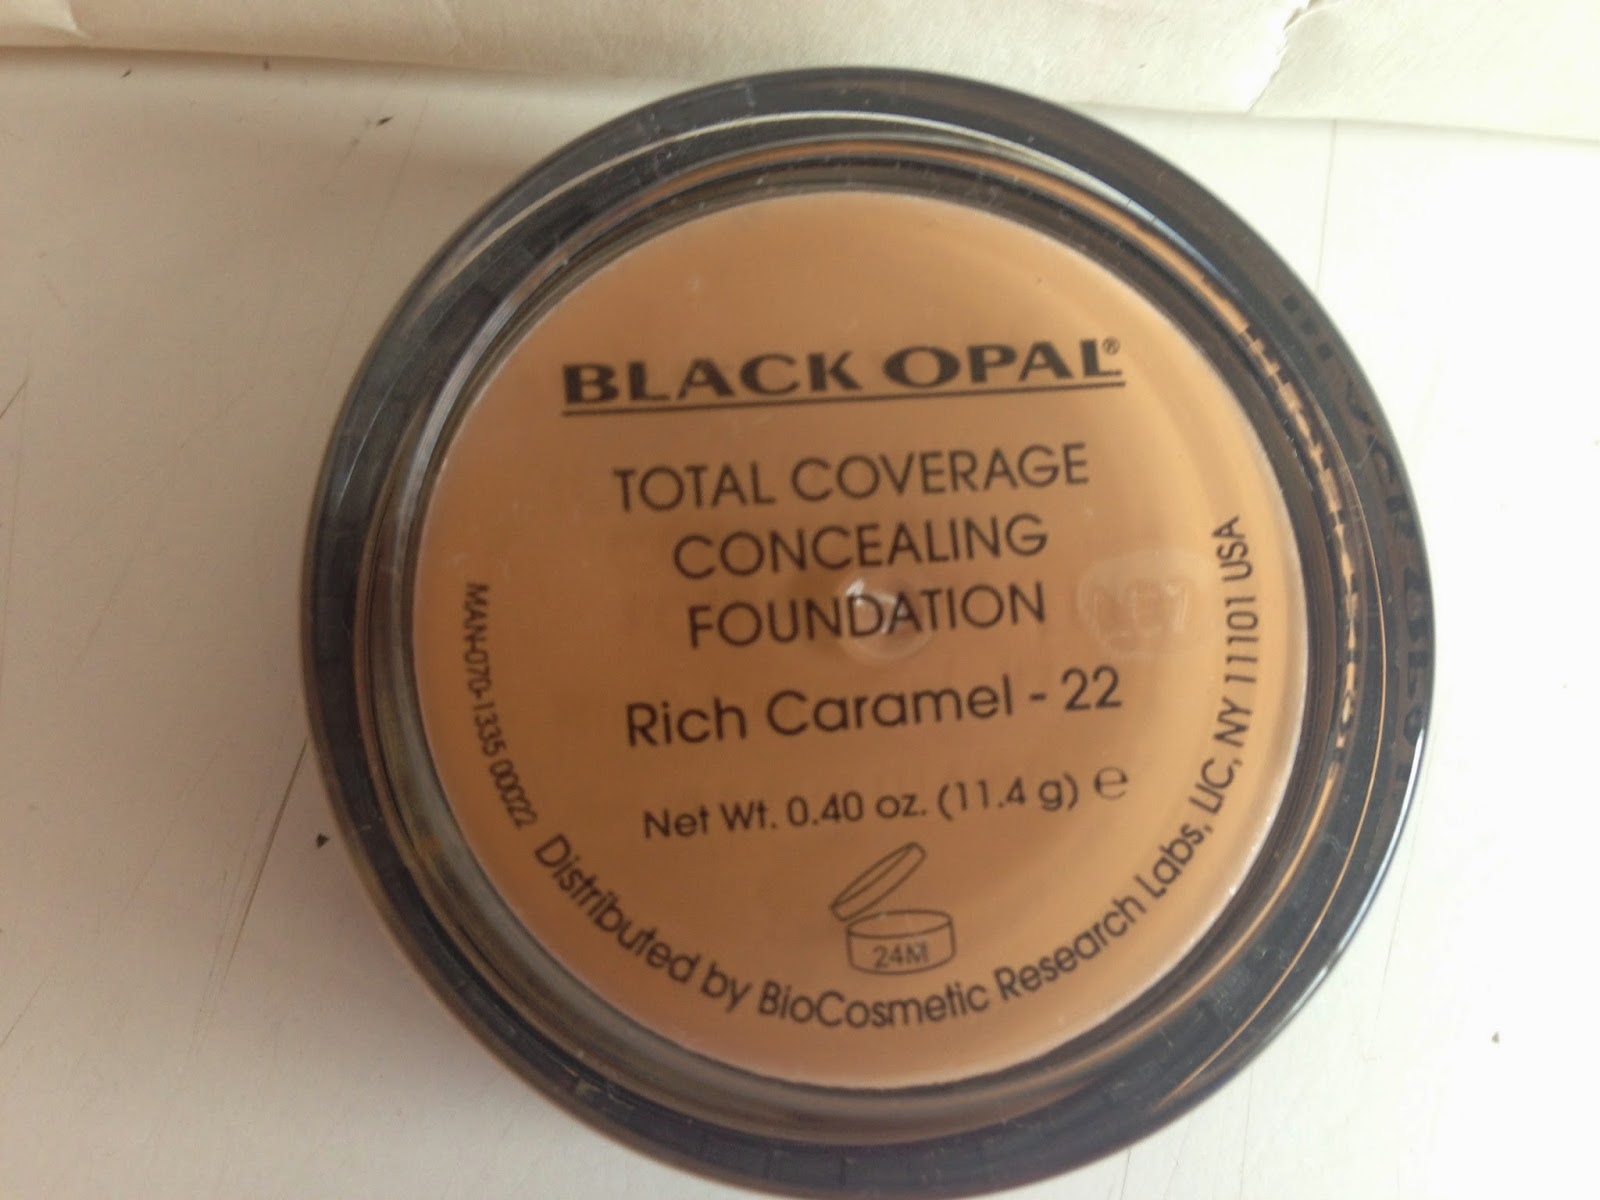 Black Opal Total Coverage Concealing Foundation - www.modenmakeup.com